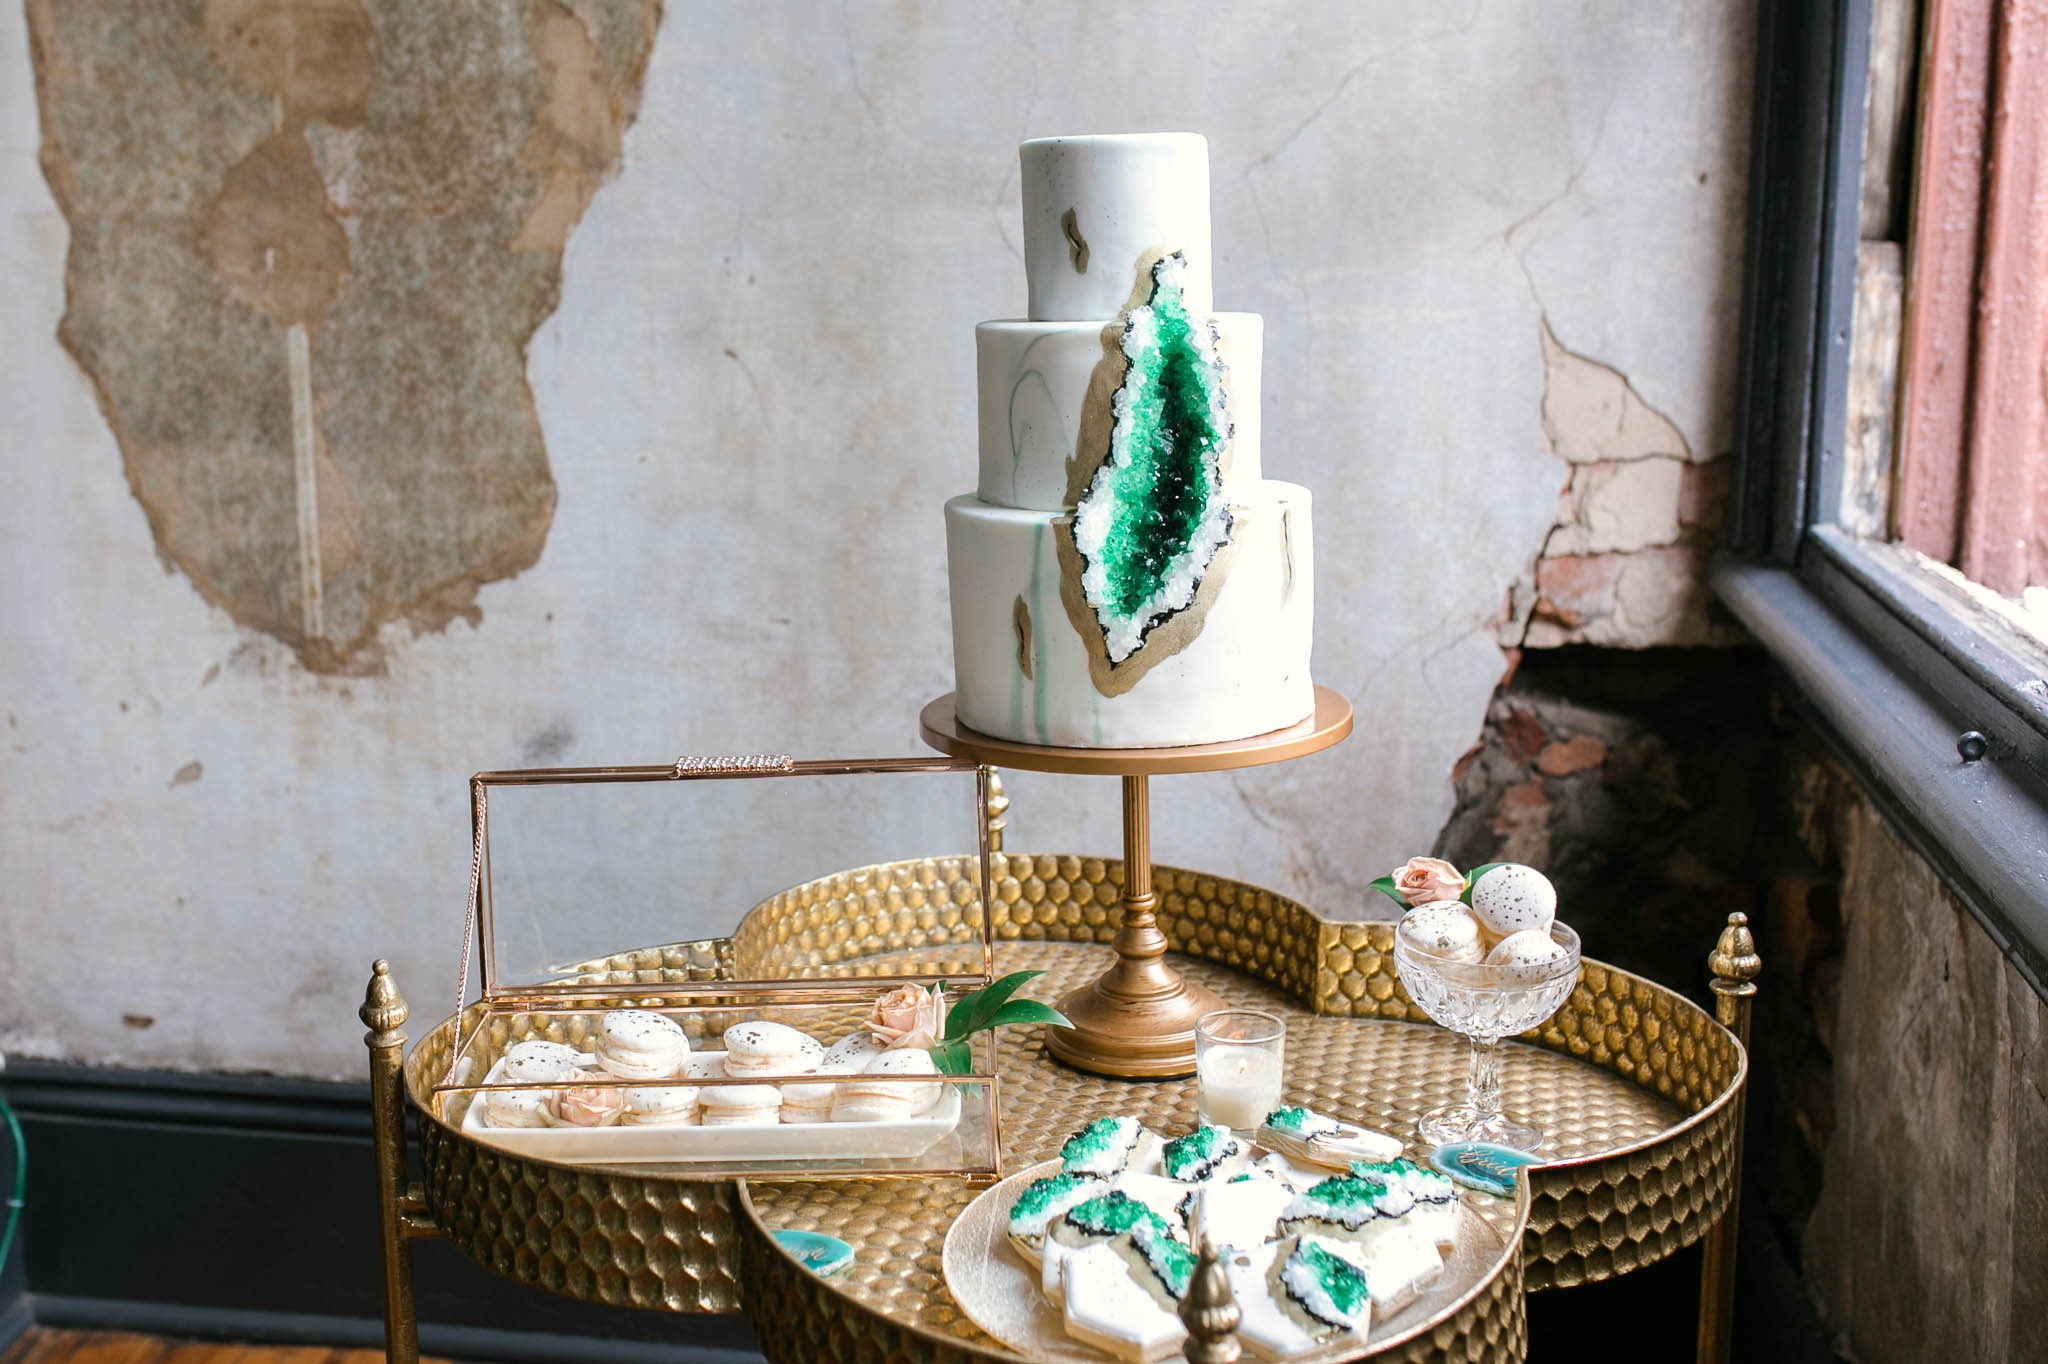 Wedding Desert Table with a Geode Wedding Cake, Macaroons and Geode Cookies in Emerald, Marble and Gold Colors - Oahu Hawaii Wedding Photographer